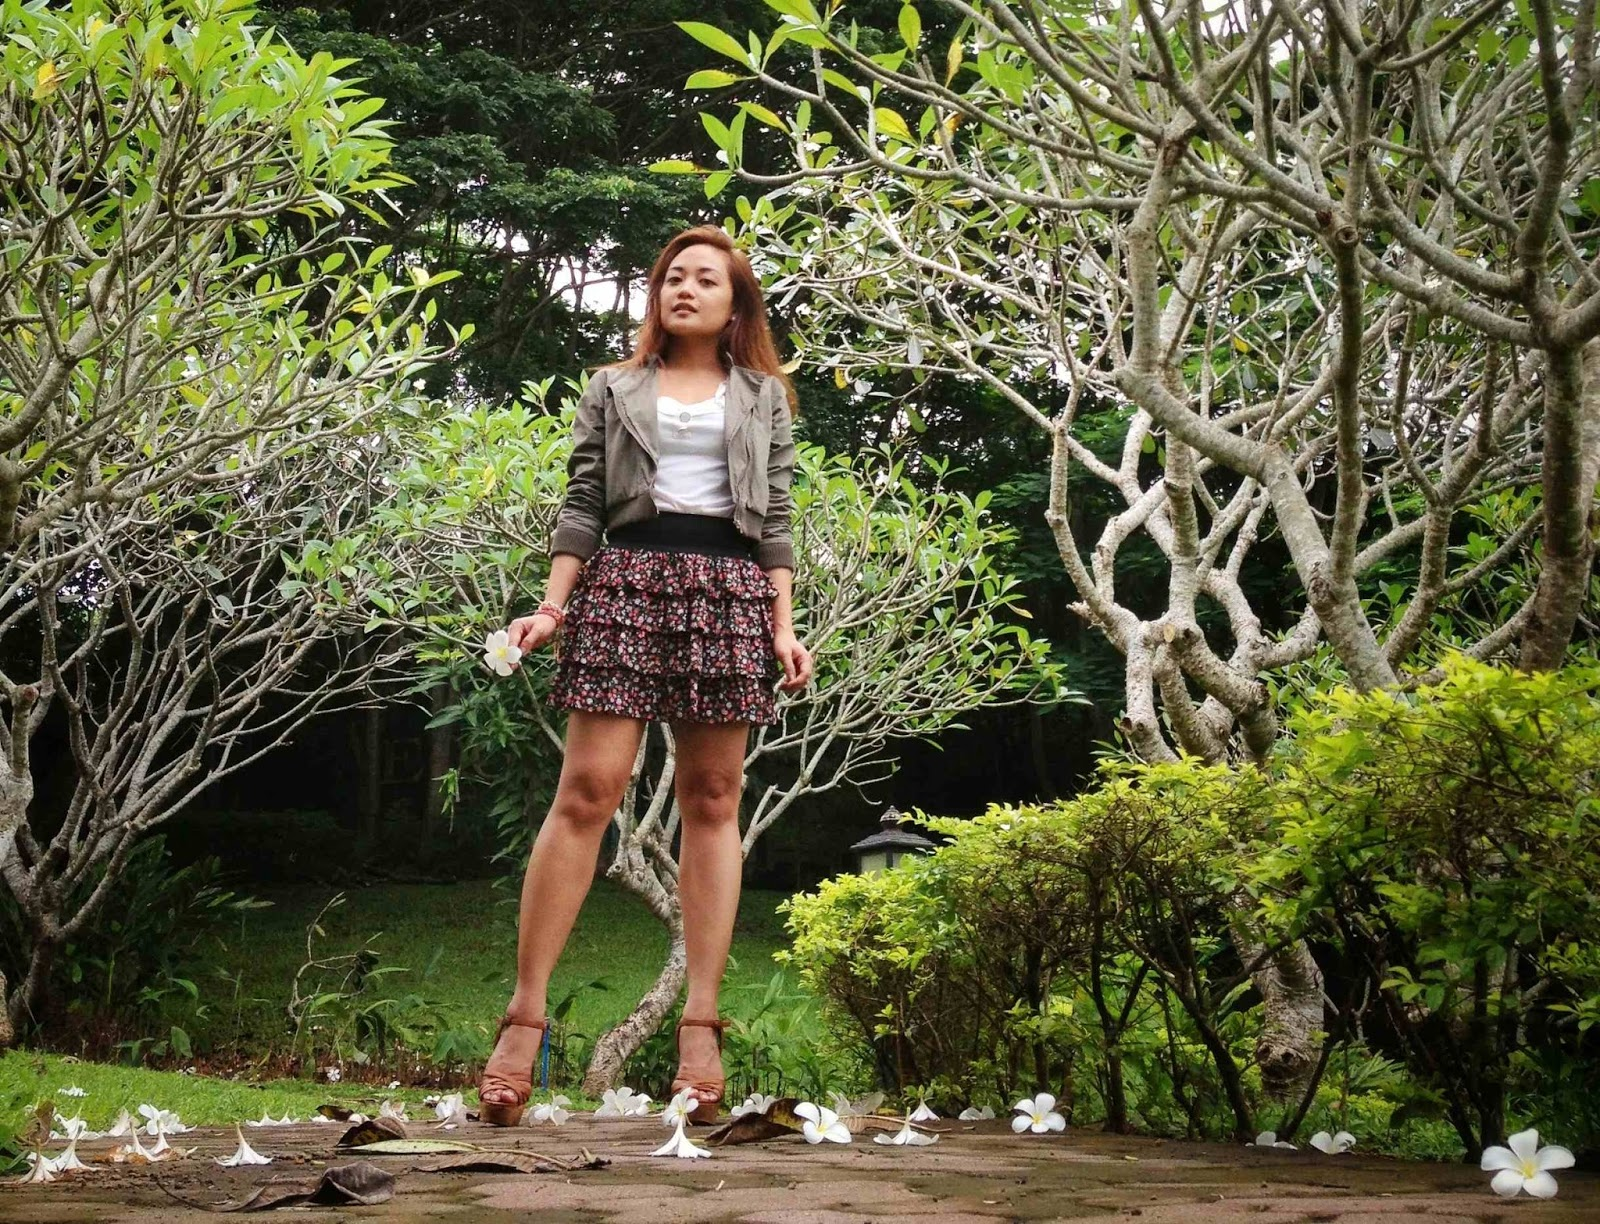 weekend getaway, south of manila, ruffled skirt, summer outfit, wedges, forever 21